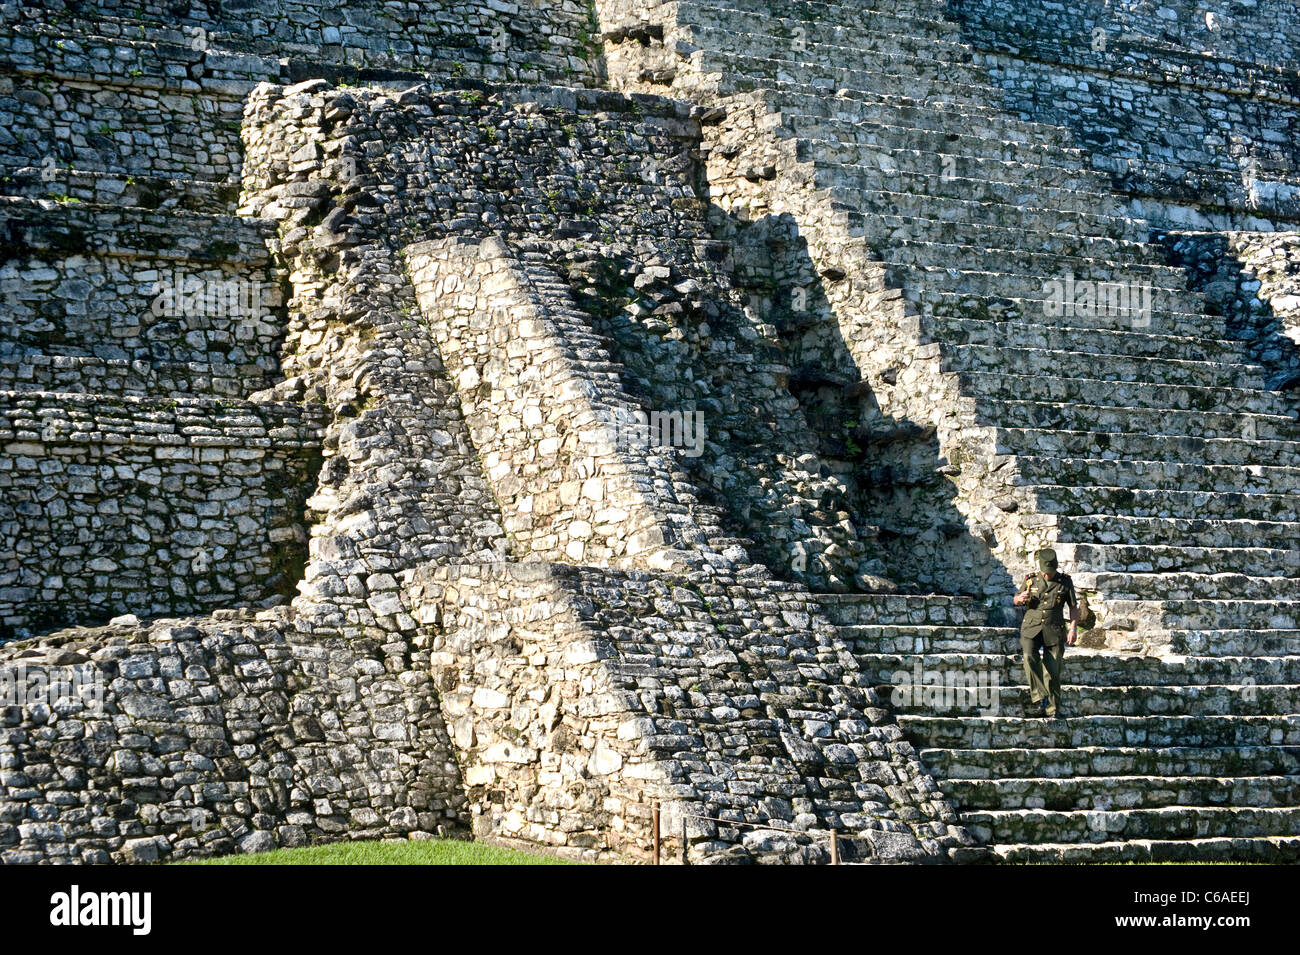 Mayan Ruins at Palenque in Mexico - Stock Image